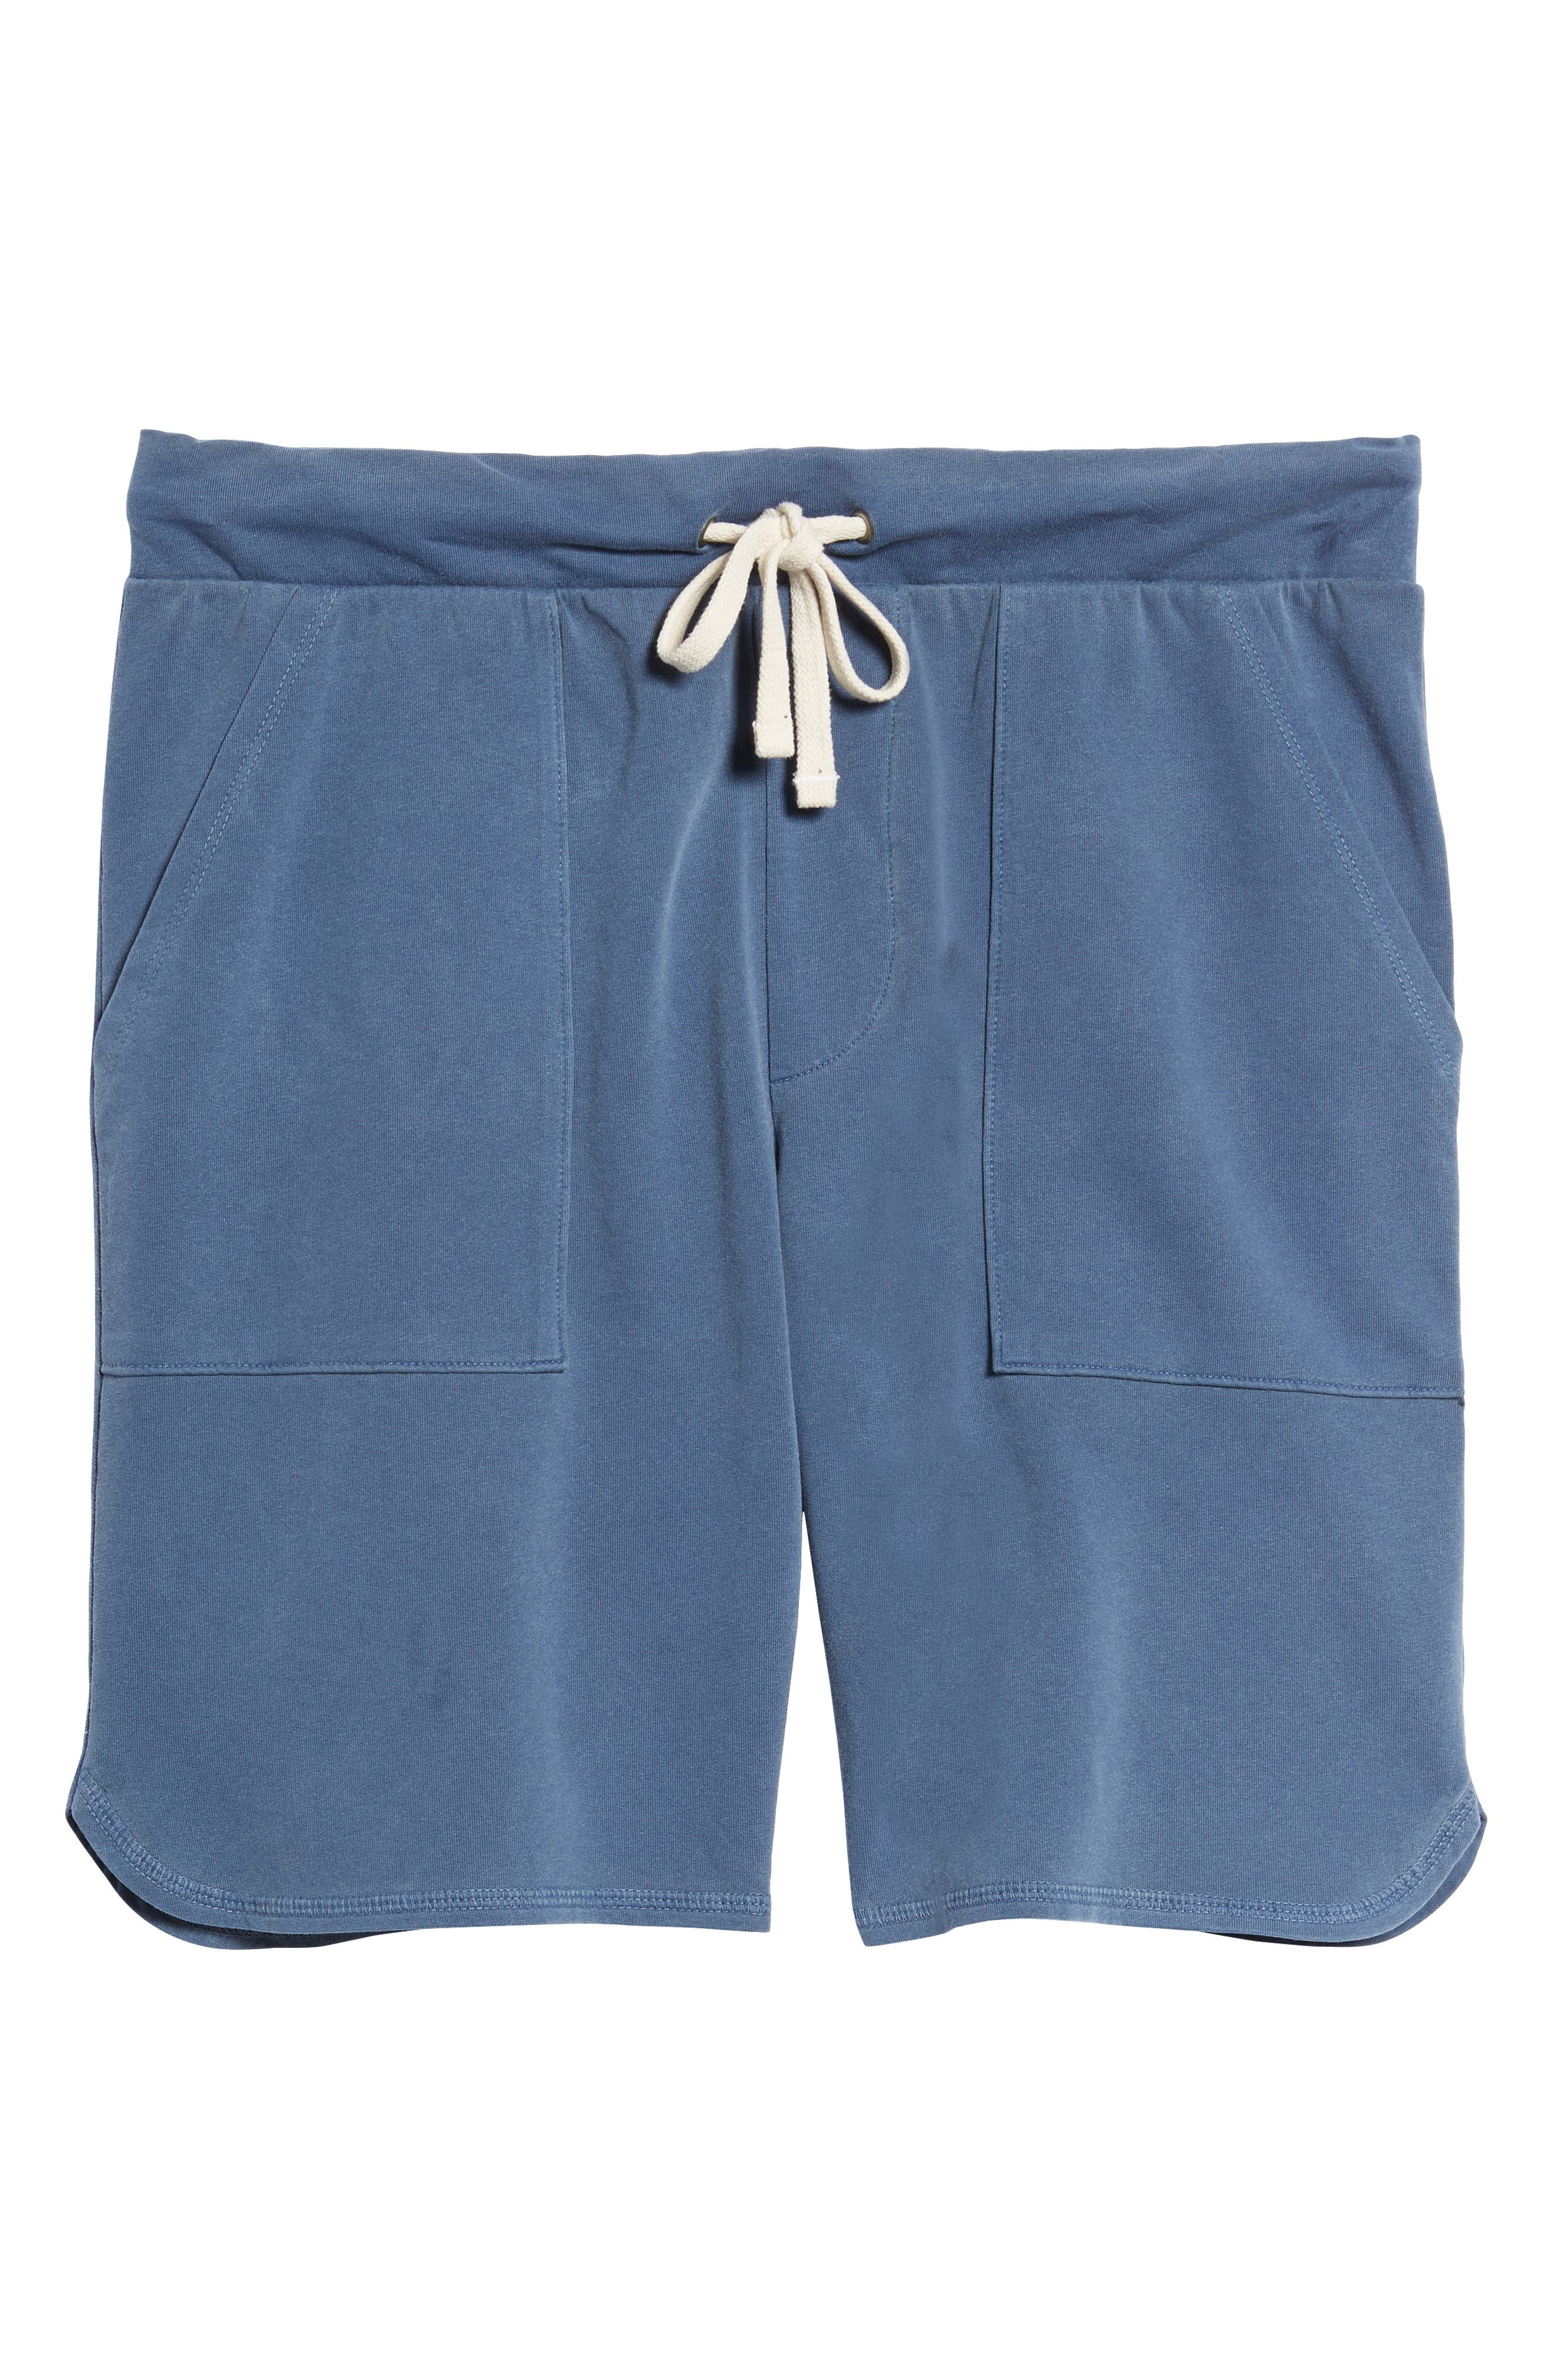 Terrycloth Scallop Shorts,                             Alternate thumbnail 6, color,                             Faded Navy